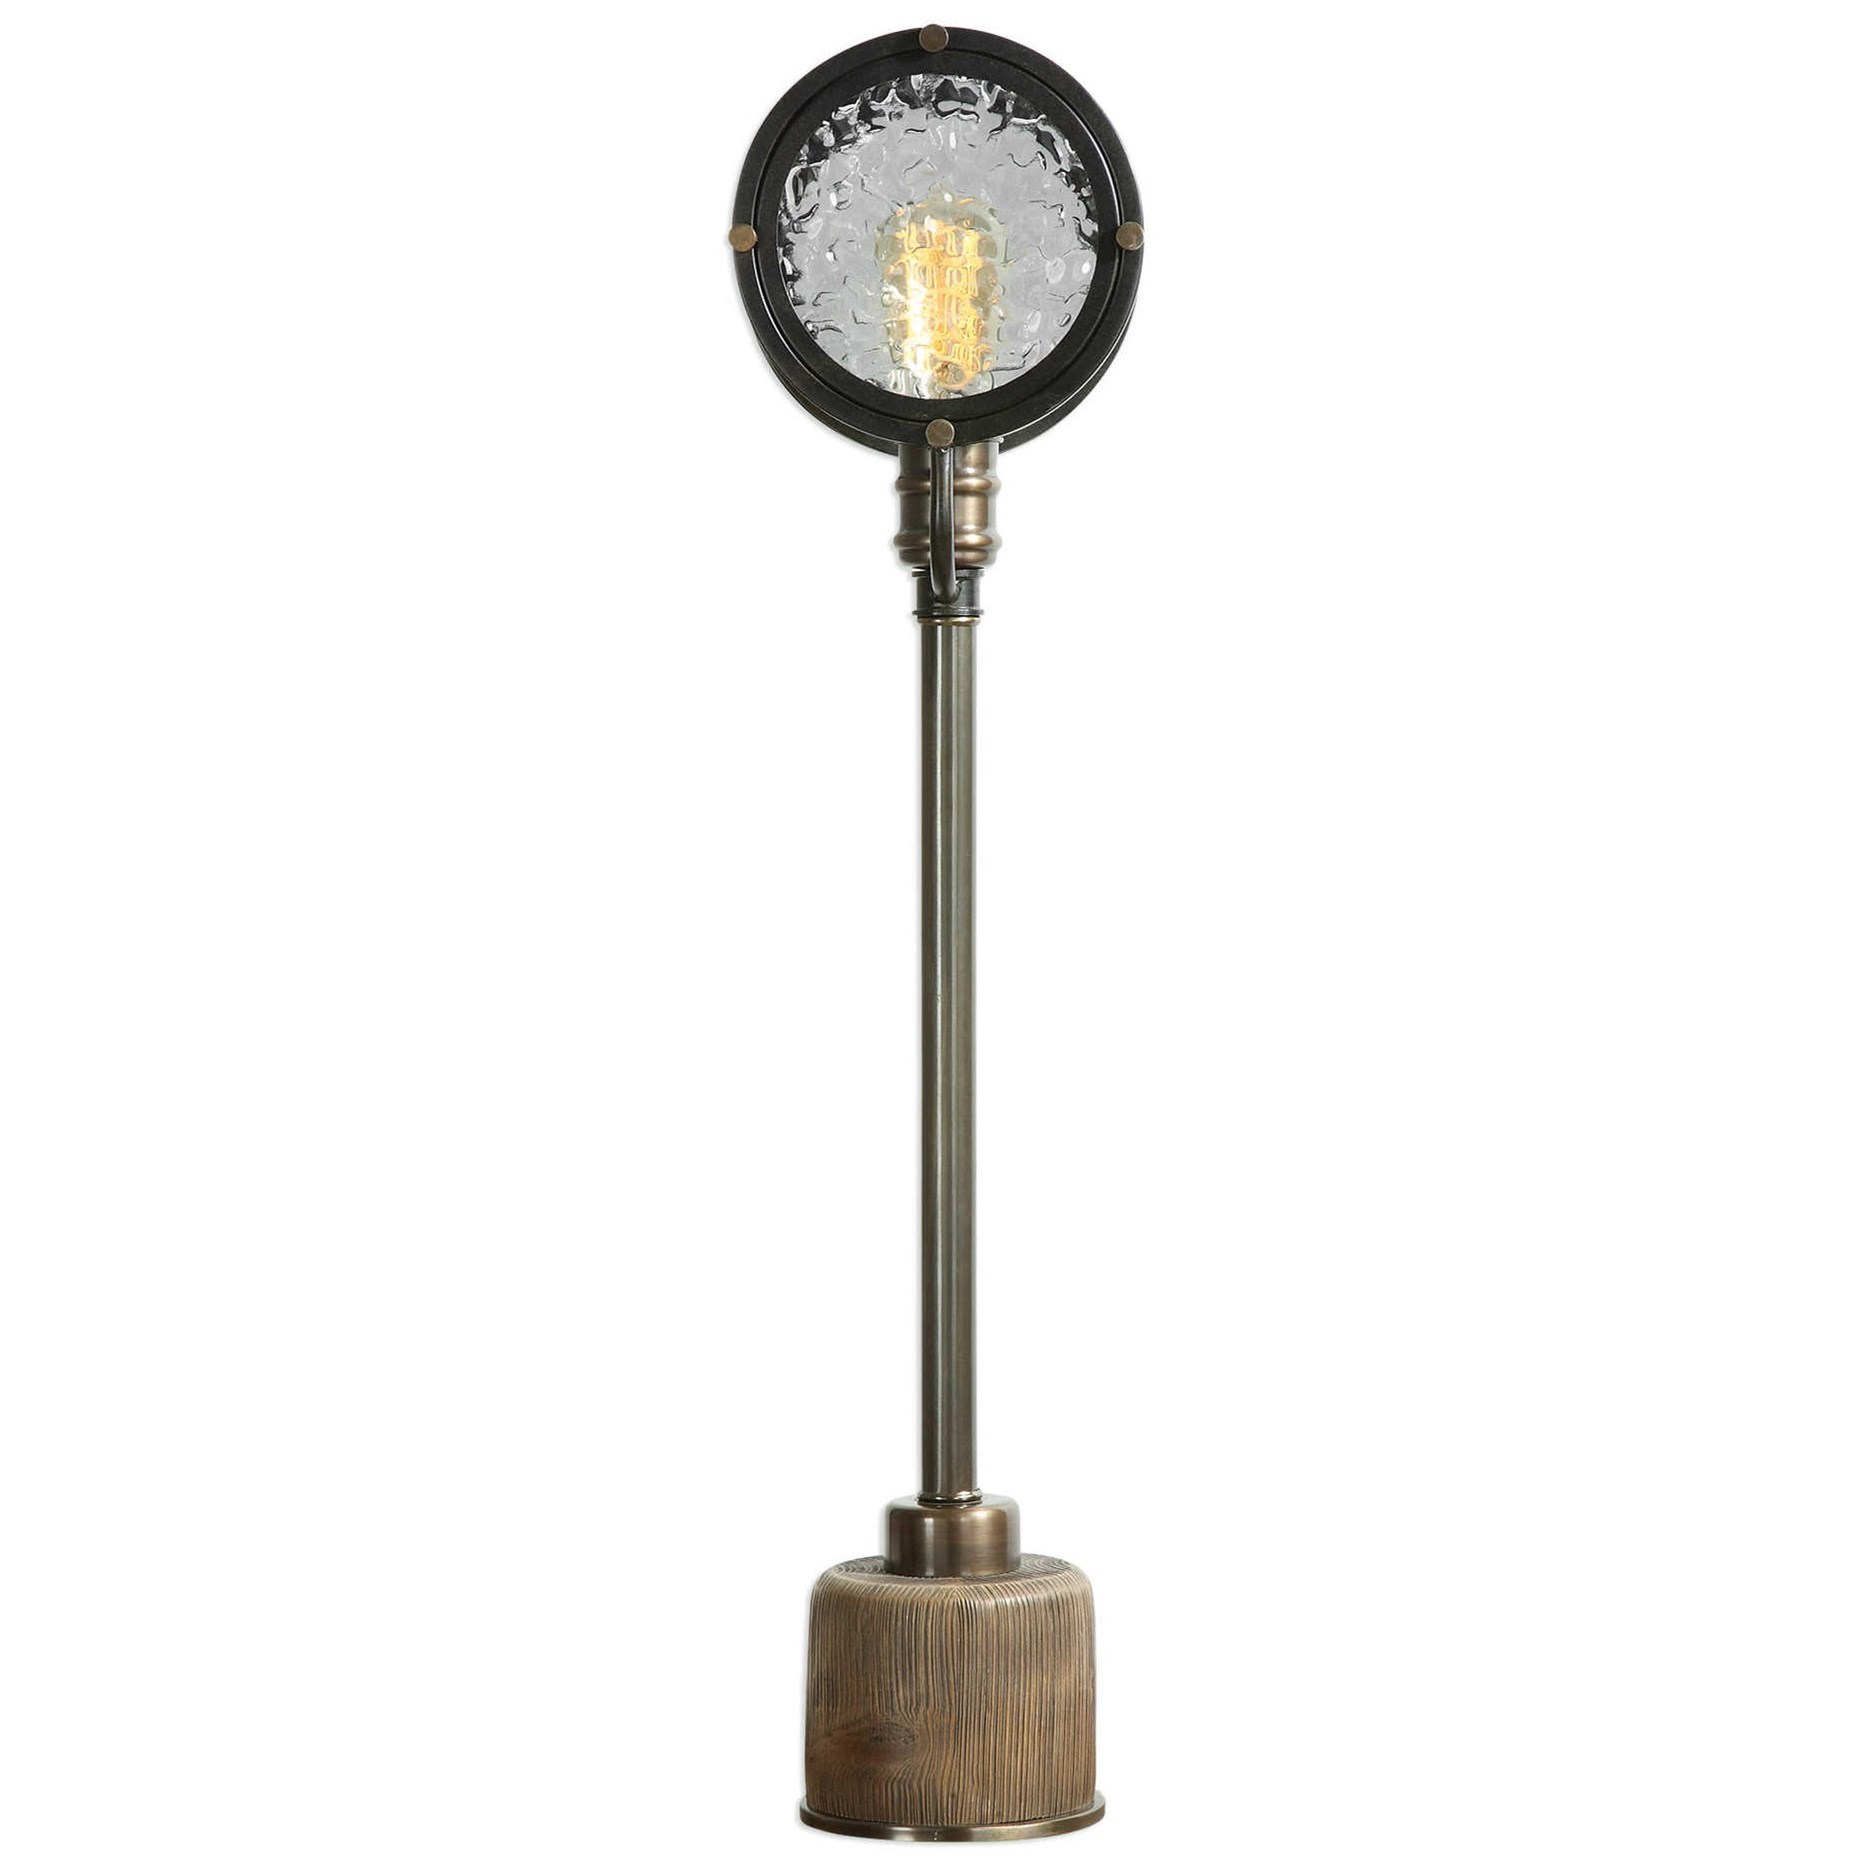 Accent Lamps Gavia Iron Column Lamp by Uttermost at Upper Room Home Furnishings